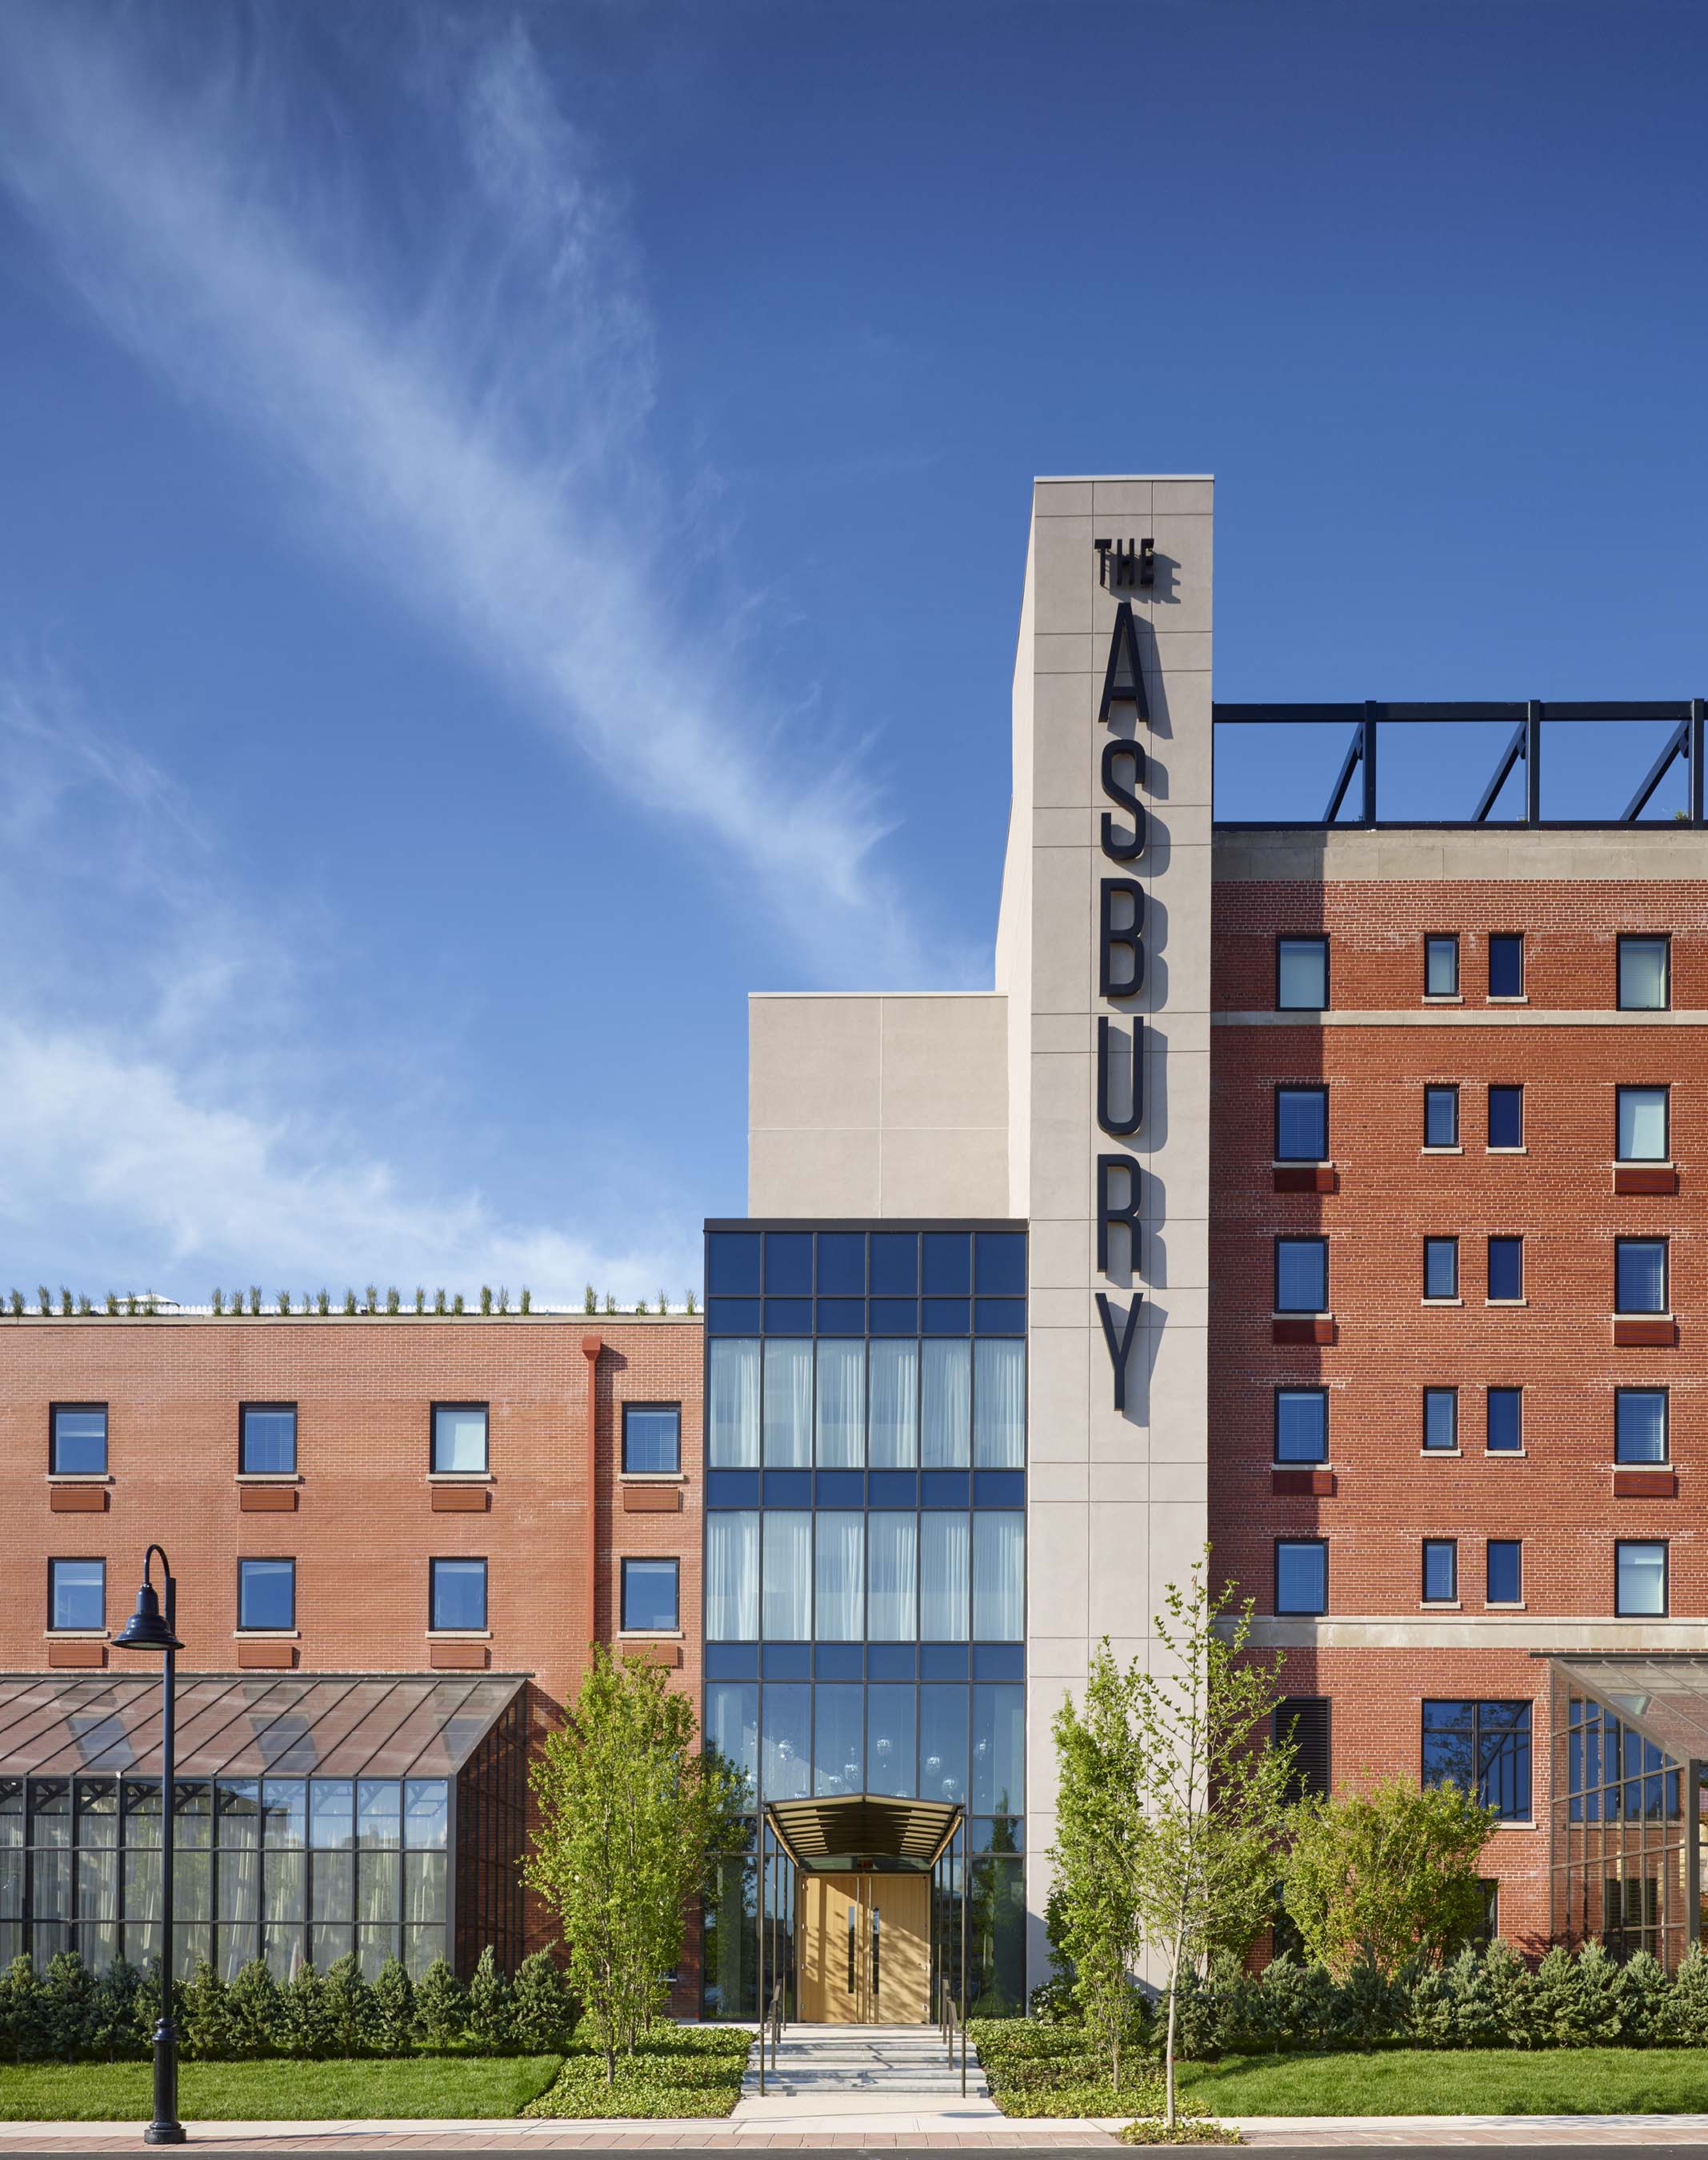 The Year's Hottest Hotel, The Asbury, Solidifies Asbury Park As The